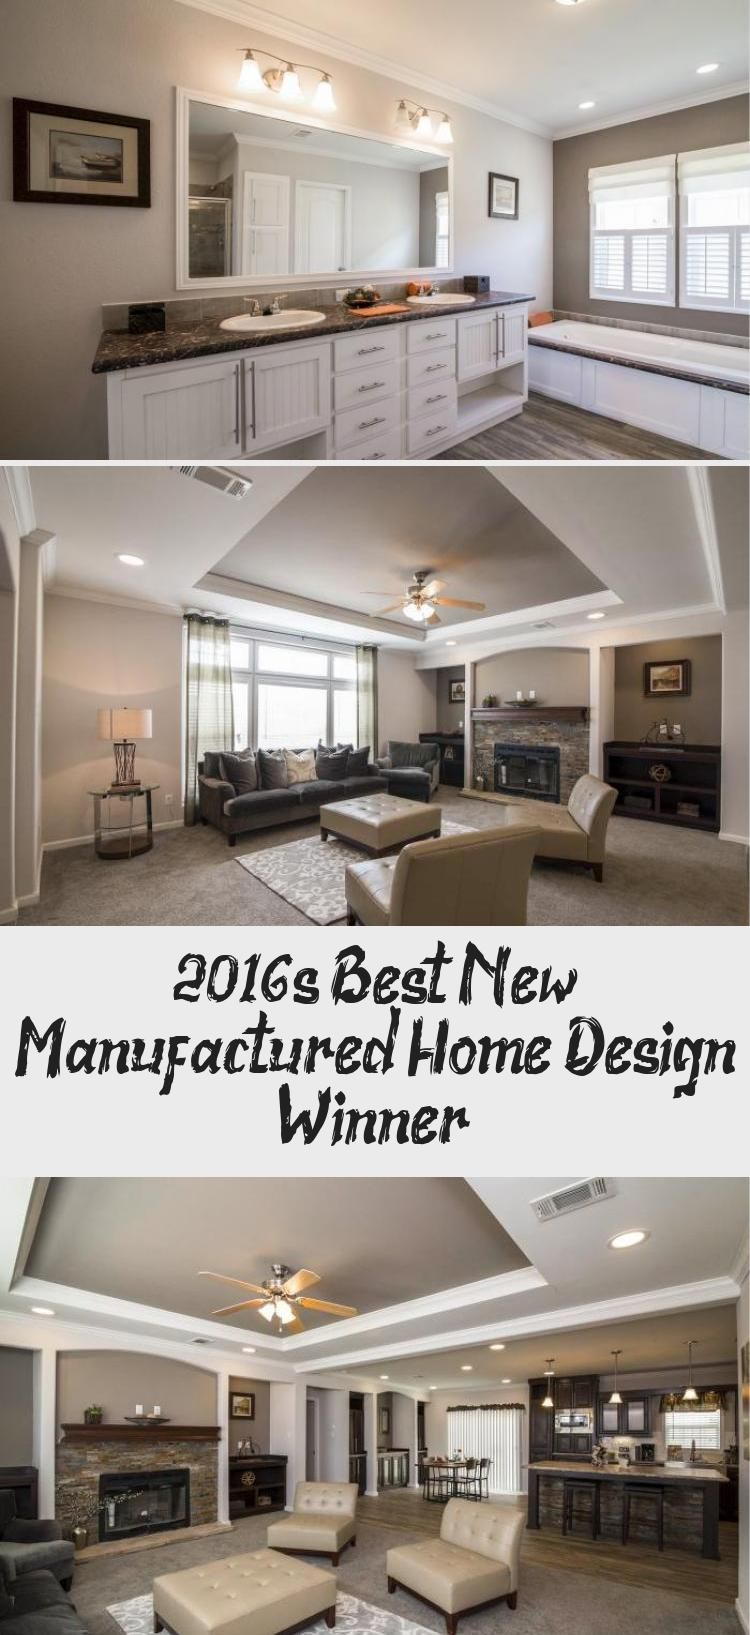 The Hillcrest IV Double Wide from Titan MHI 2016 Best